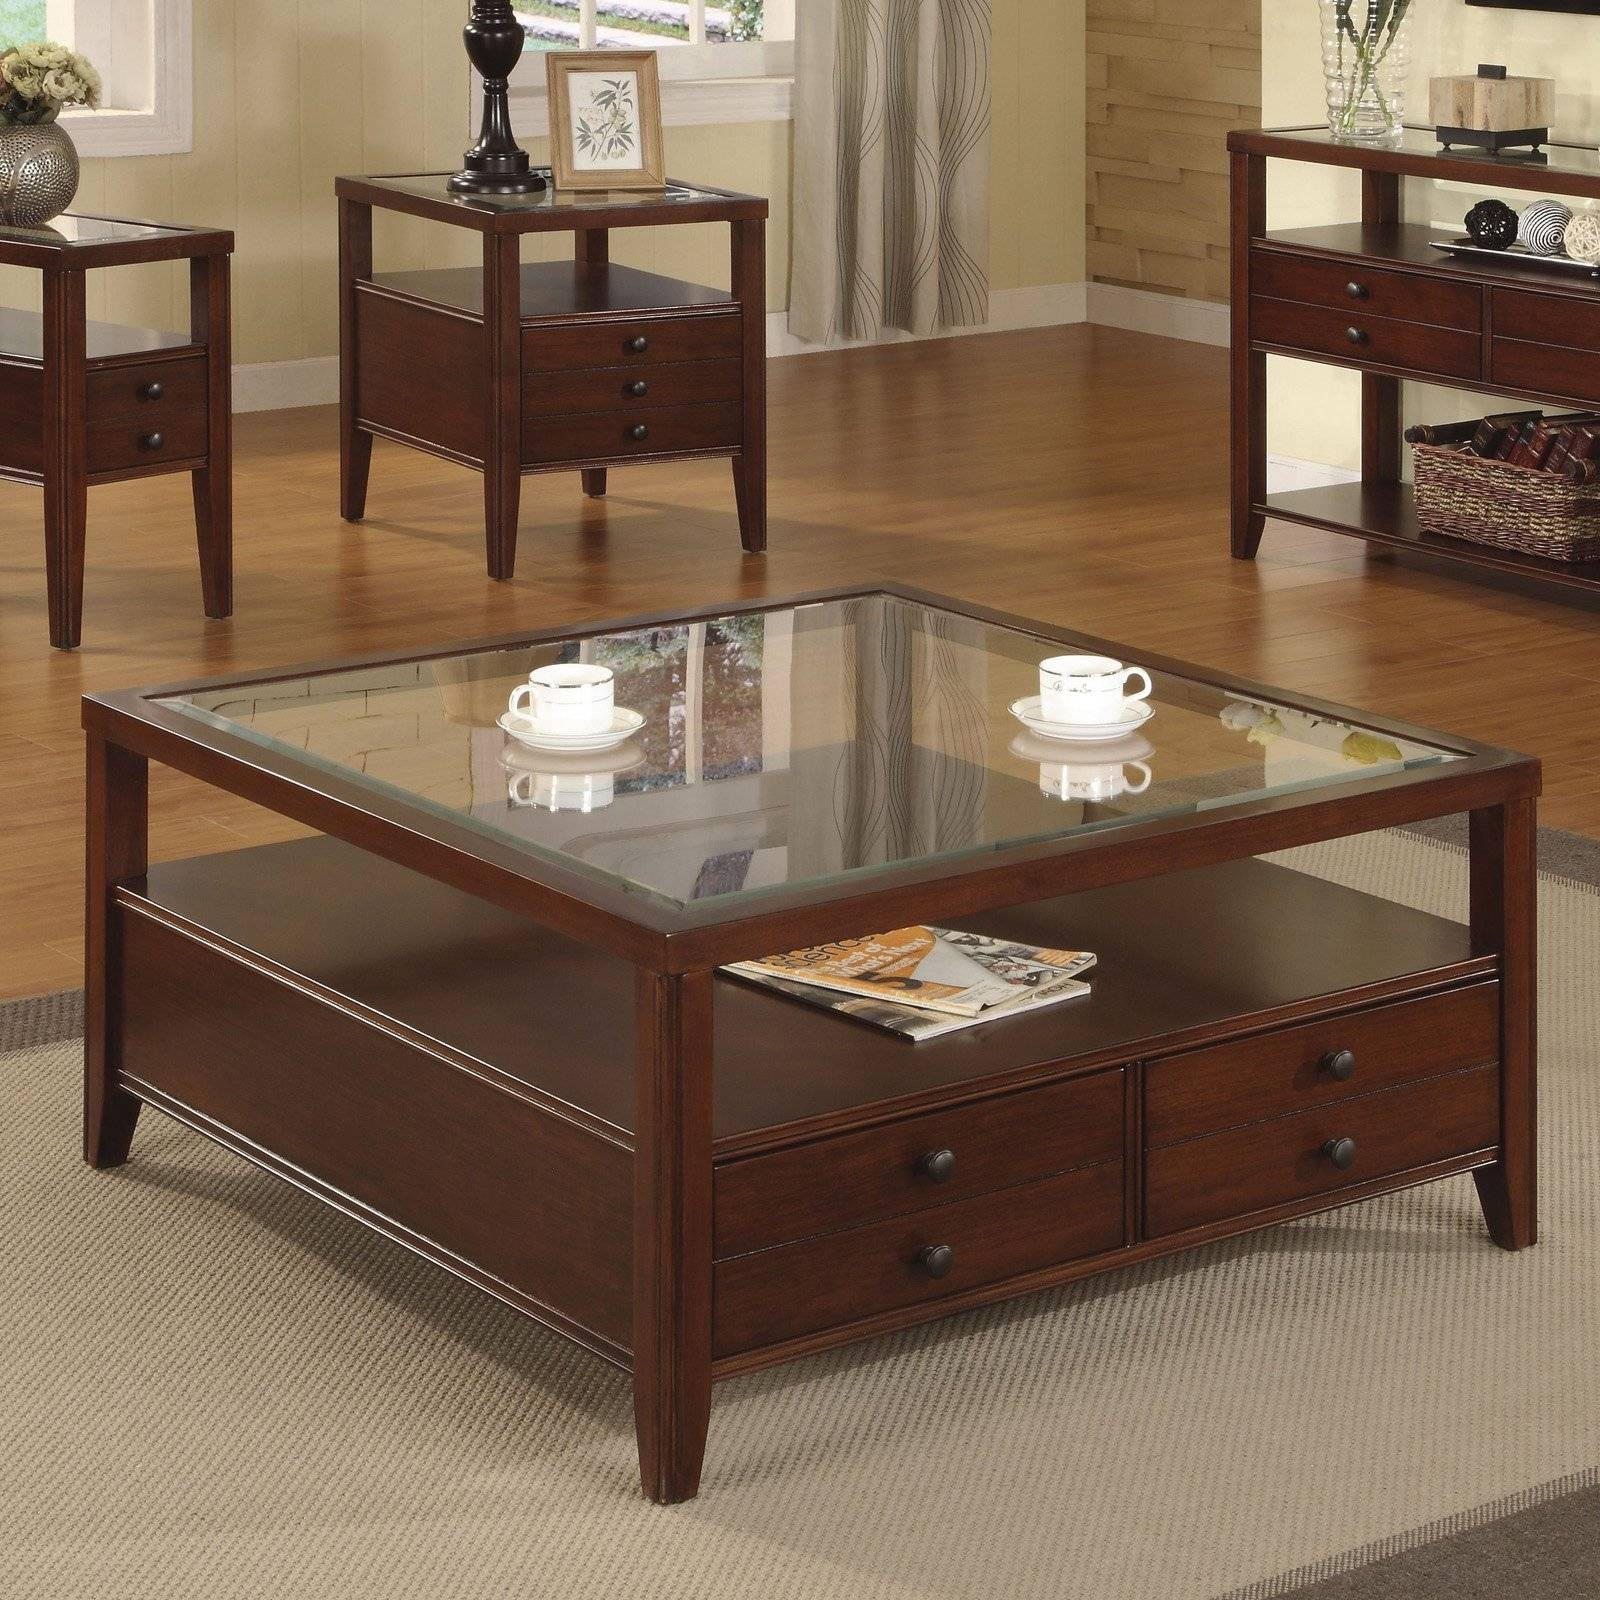 Coffee Table Legs Brown: 30 Photos Large Square Wood Coffee Tables